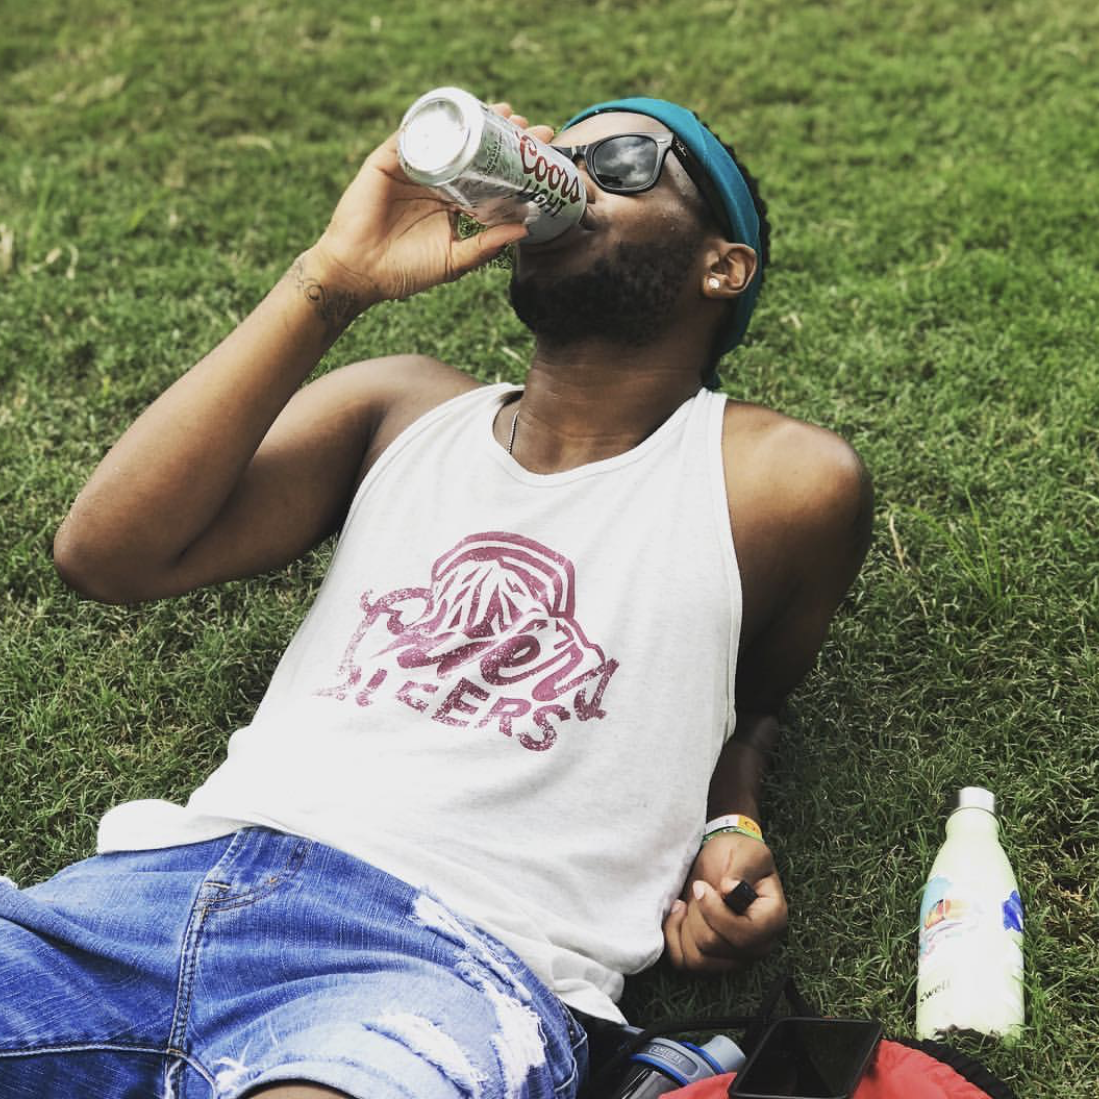 Spencer (they/them) - Sippin' a cold beer in our Cheers Queers Tank!